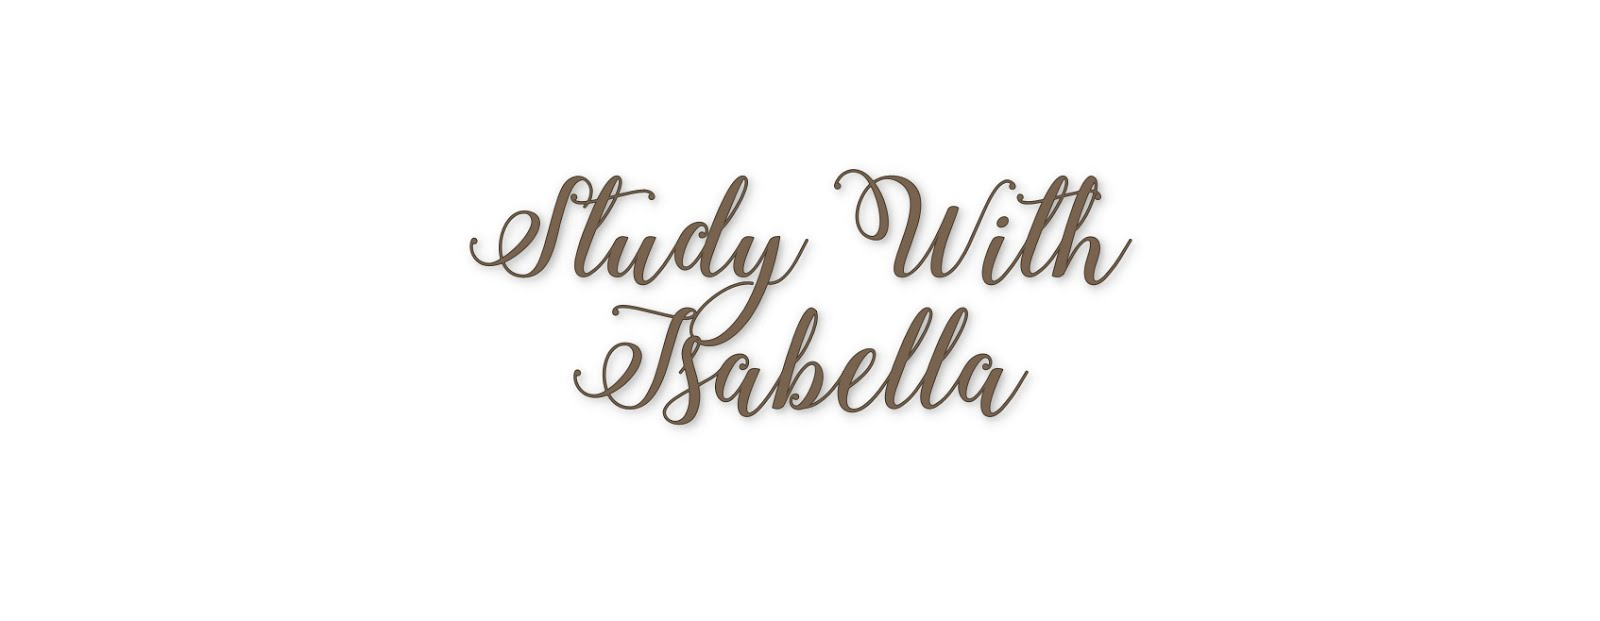 StudyWithIsabella by Isabella Zogheib